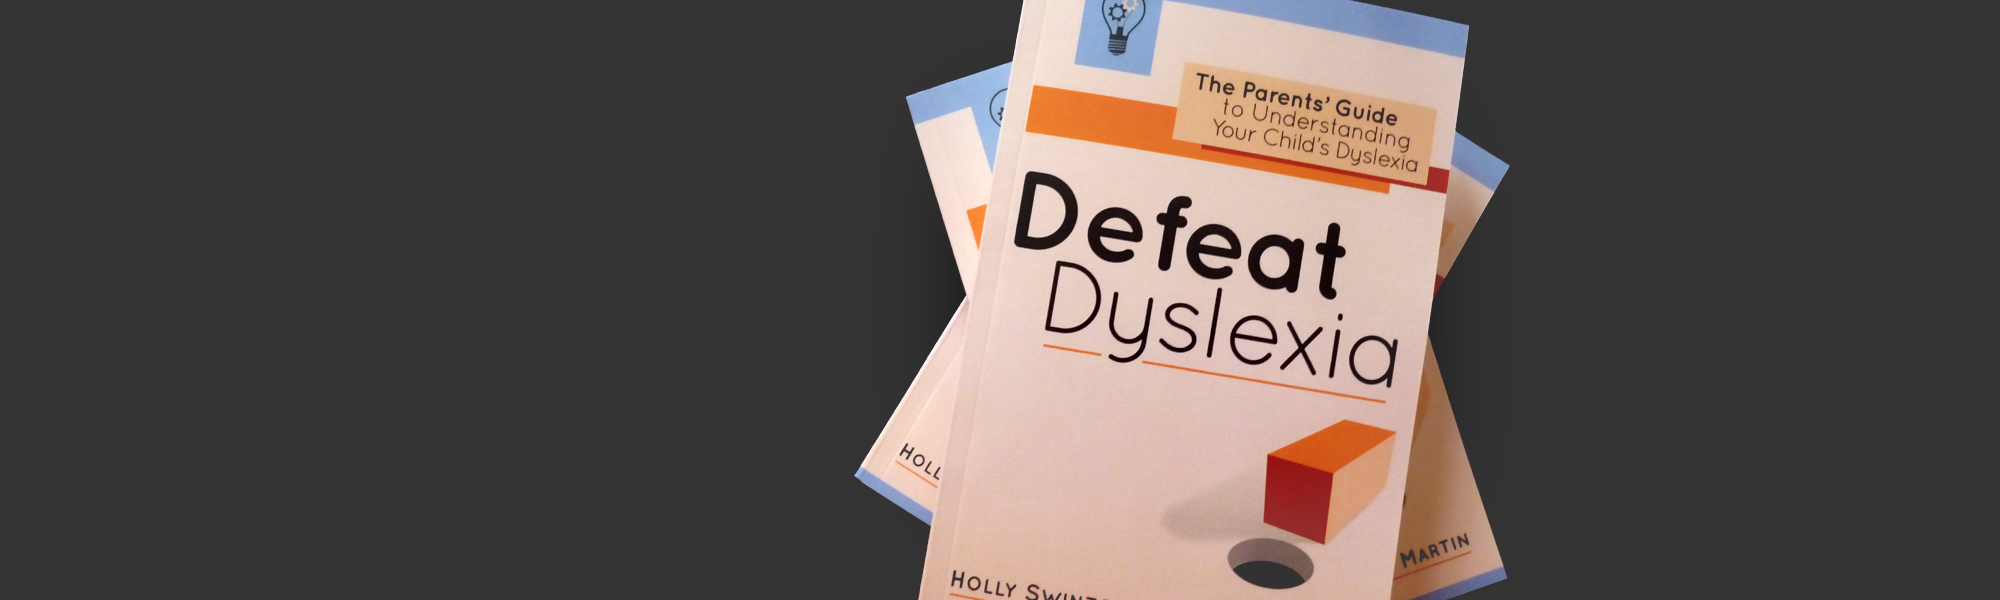 Defeat Dyslexia! book series